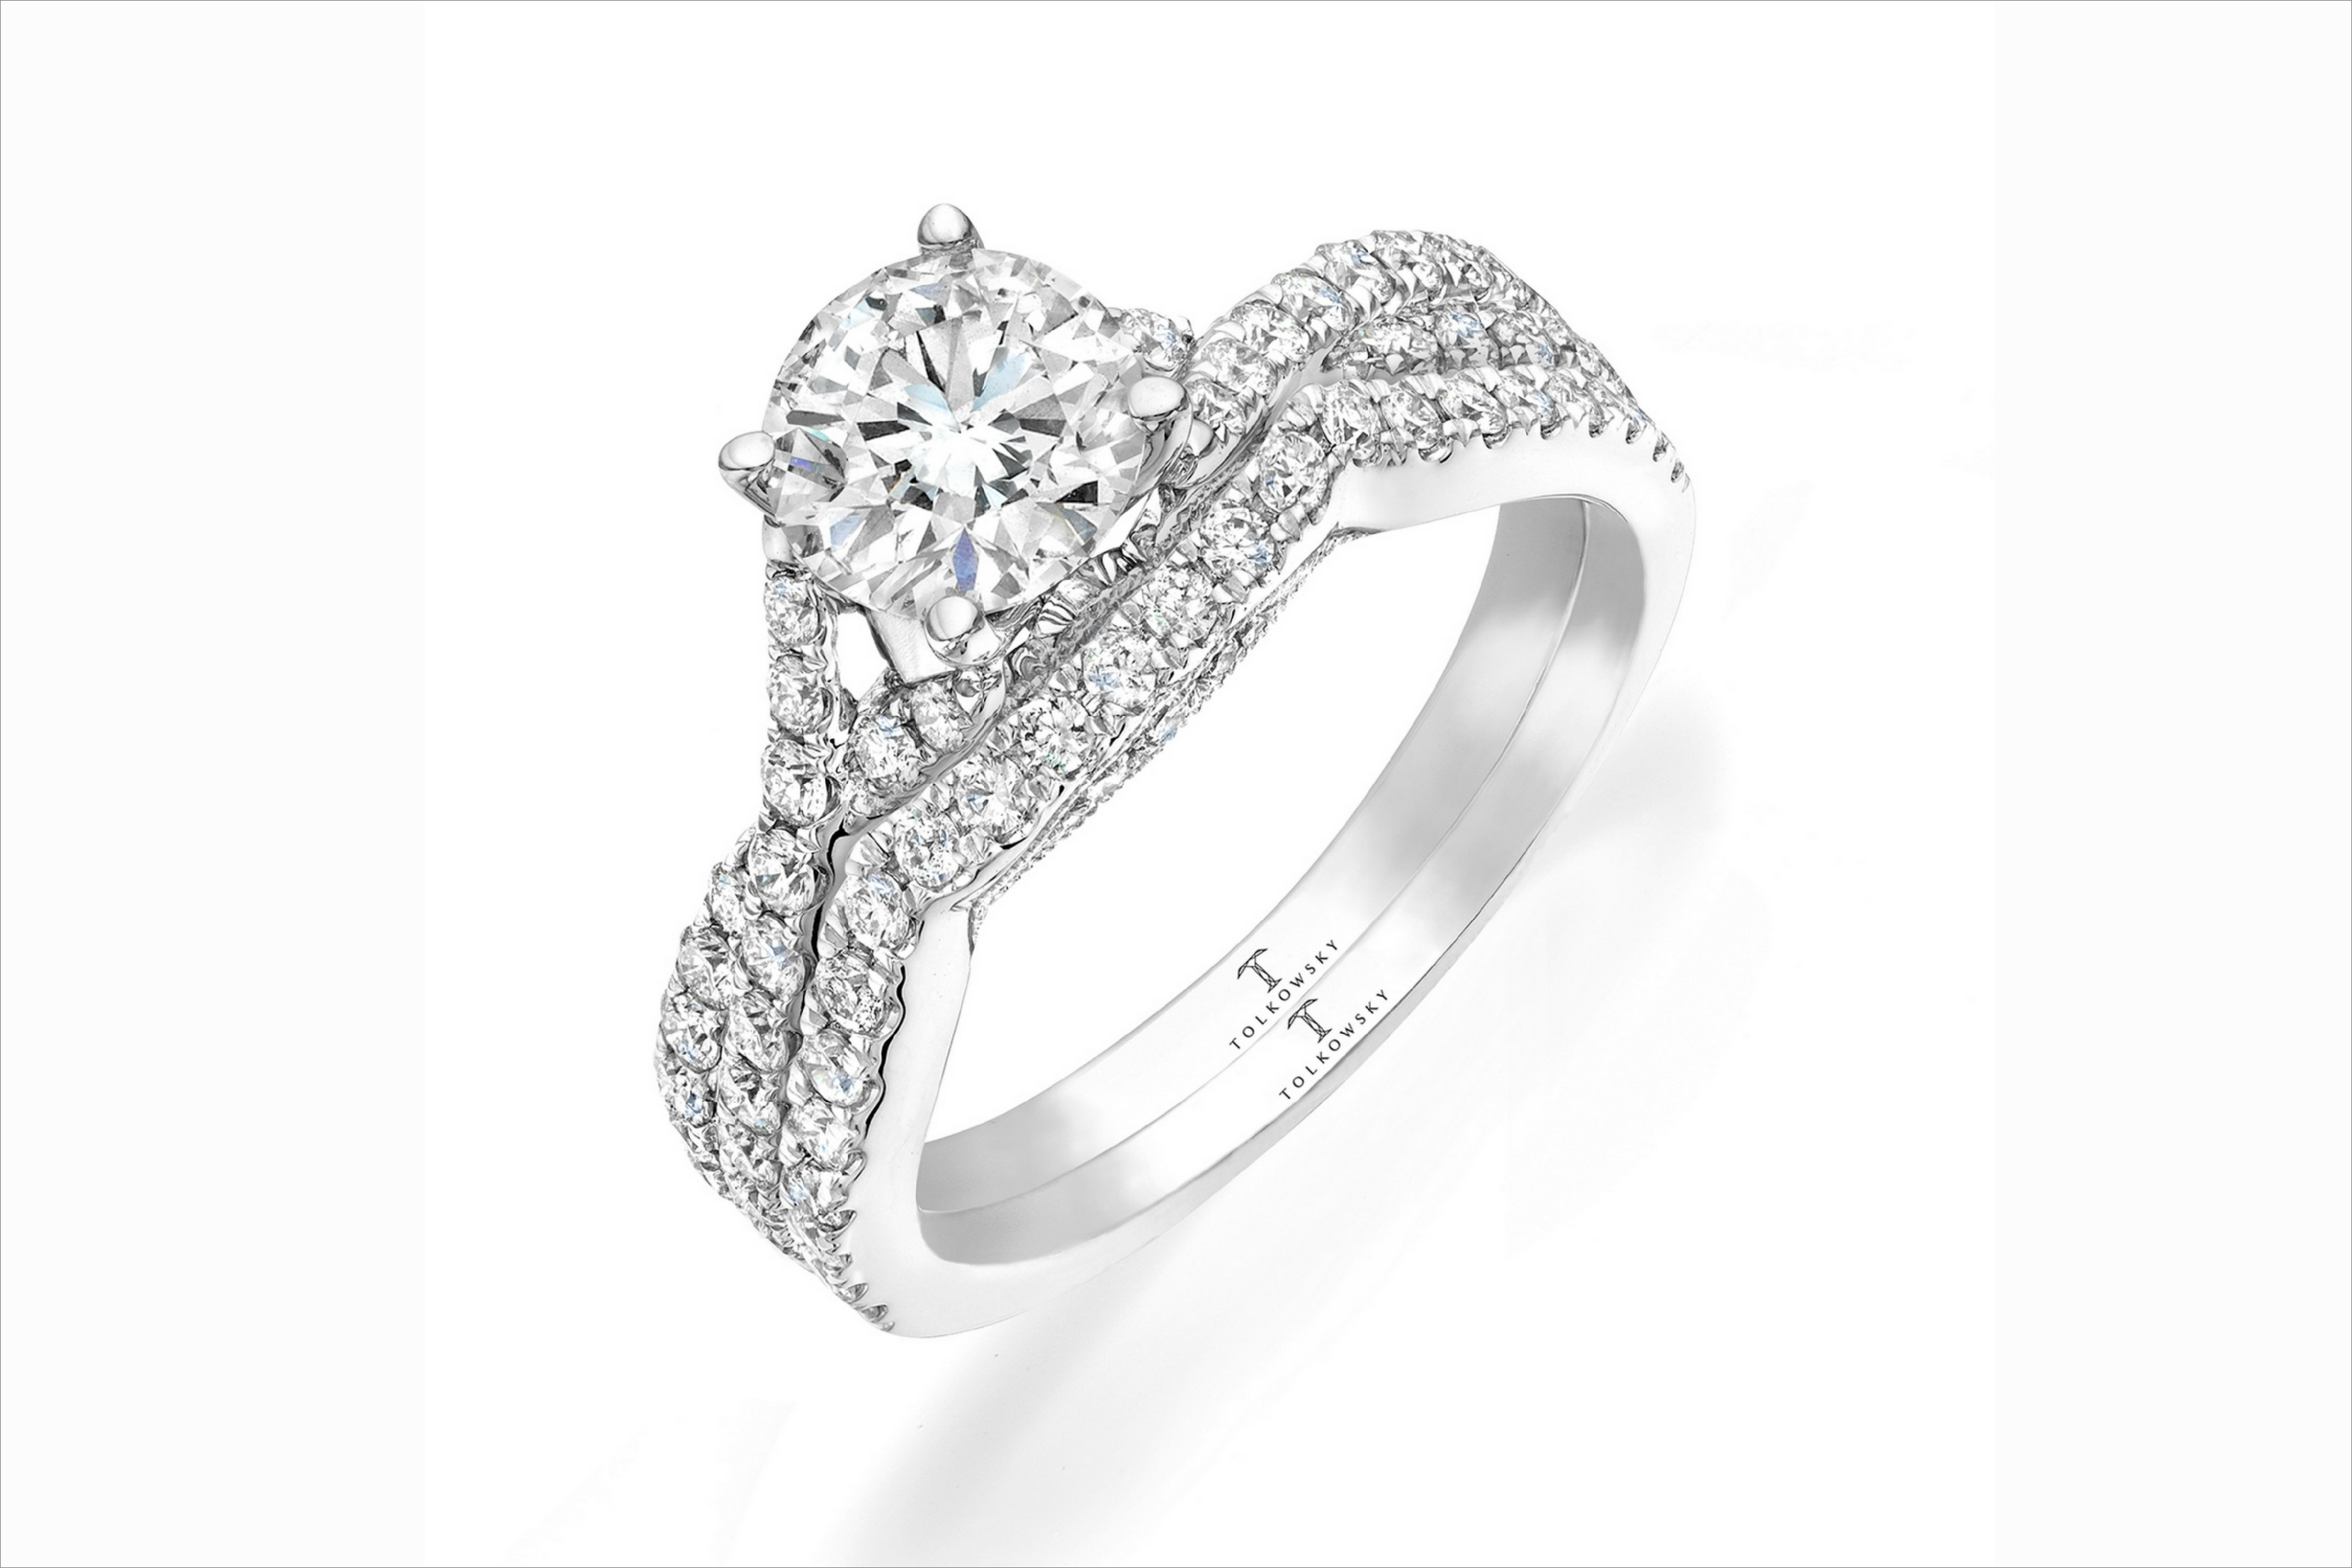 in pin rings us through engagement the tolkowsky kay jewelers gold available pinterest engagements and diamond